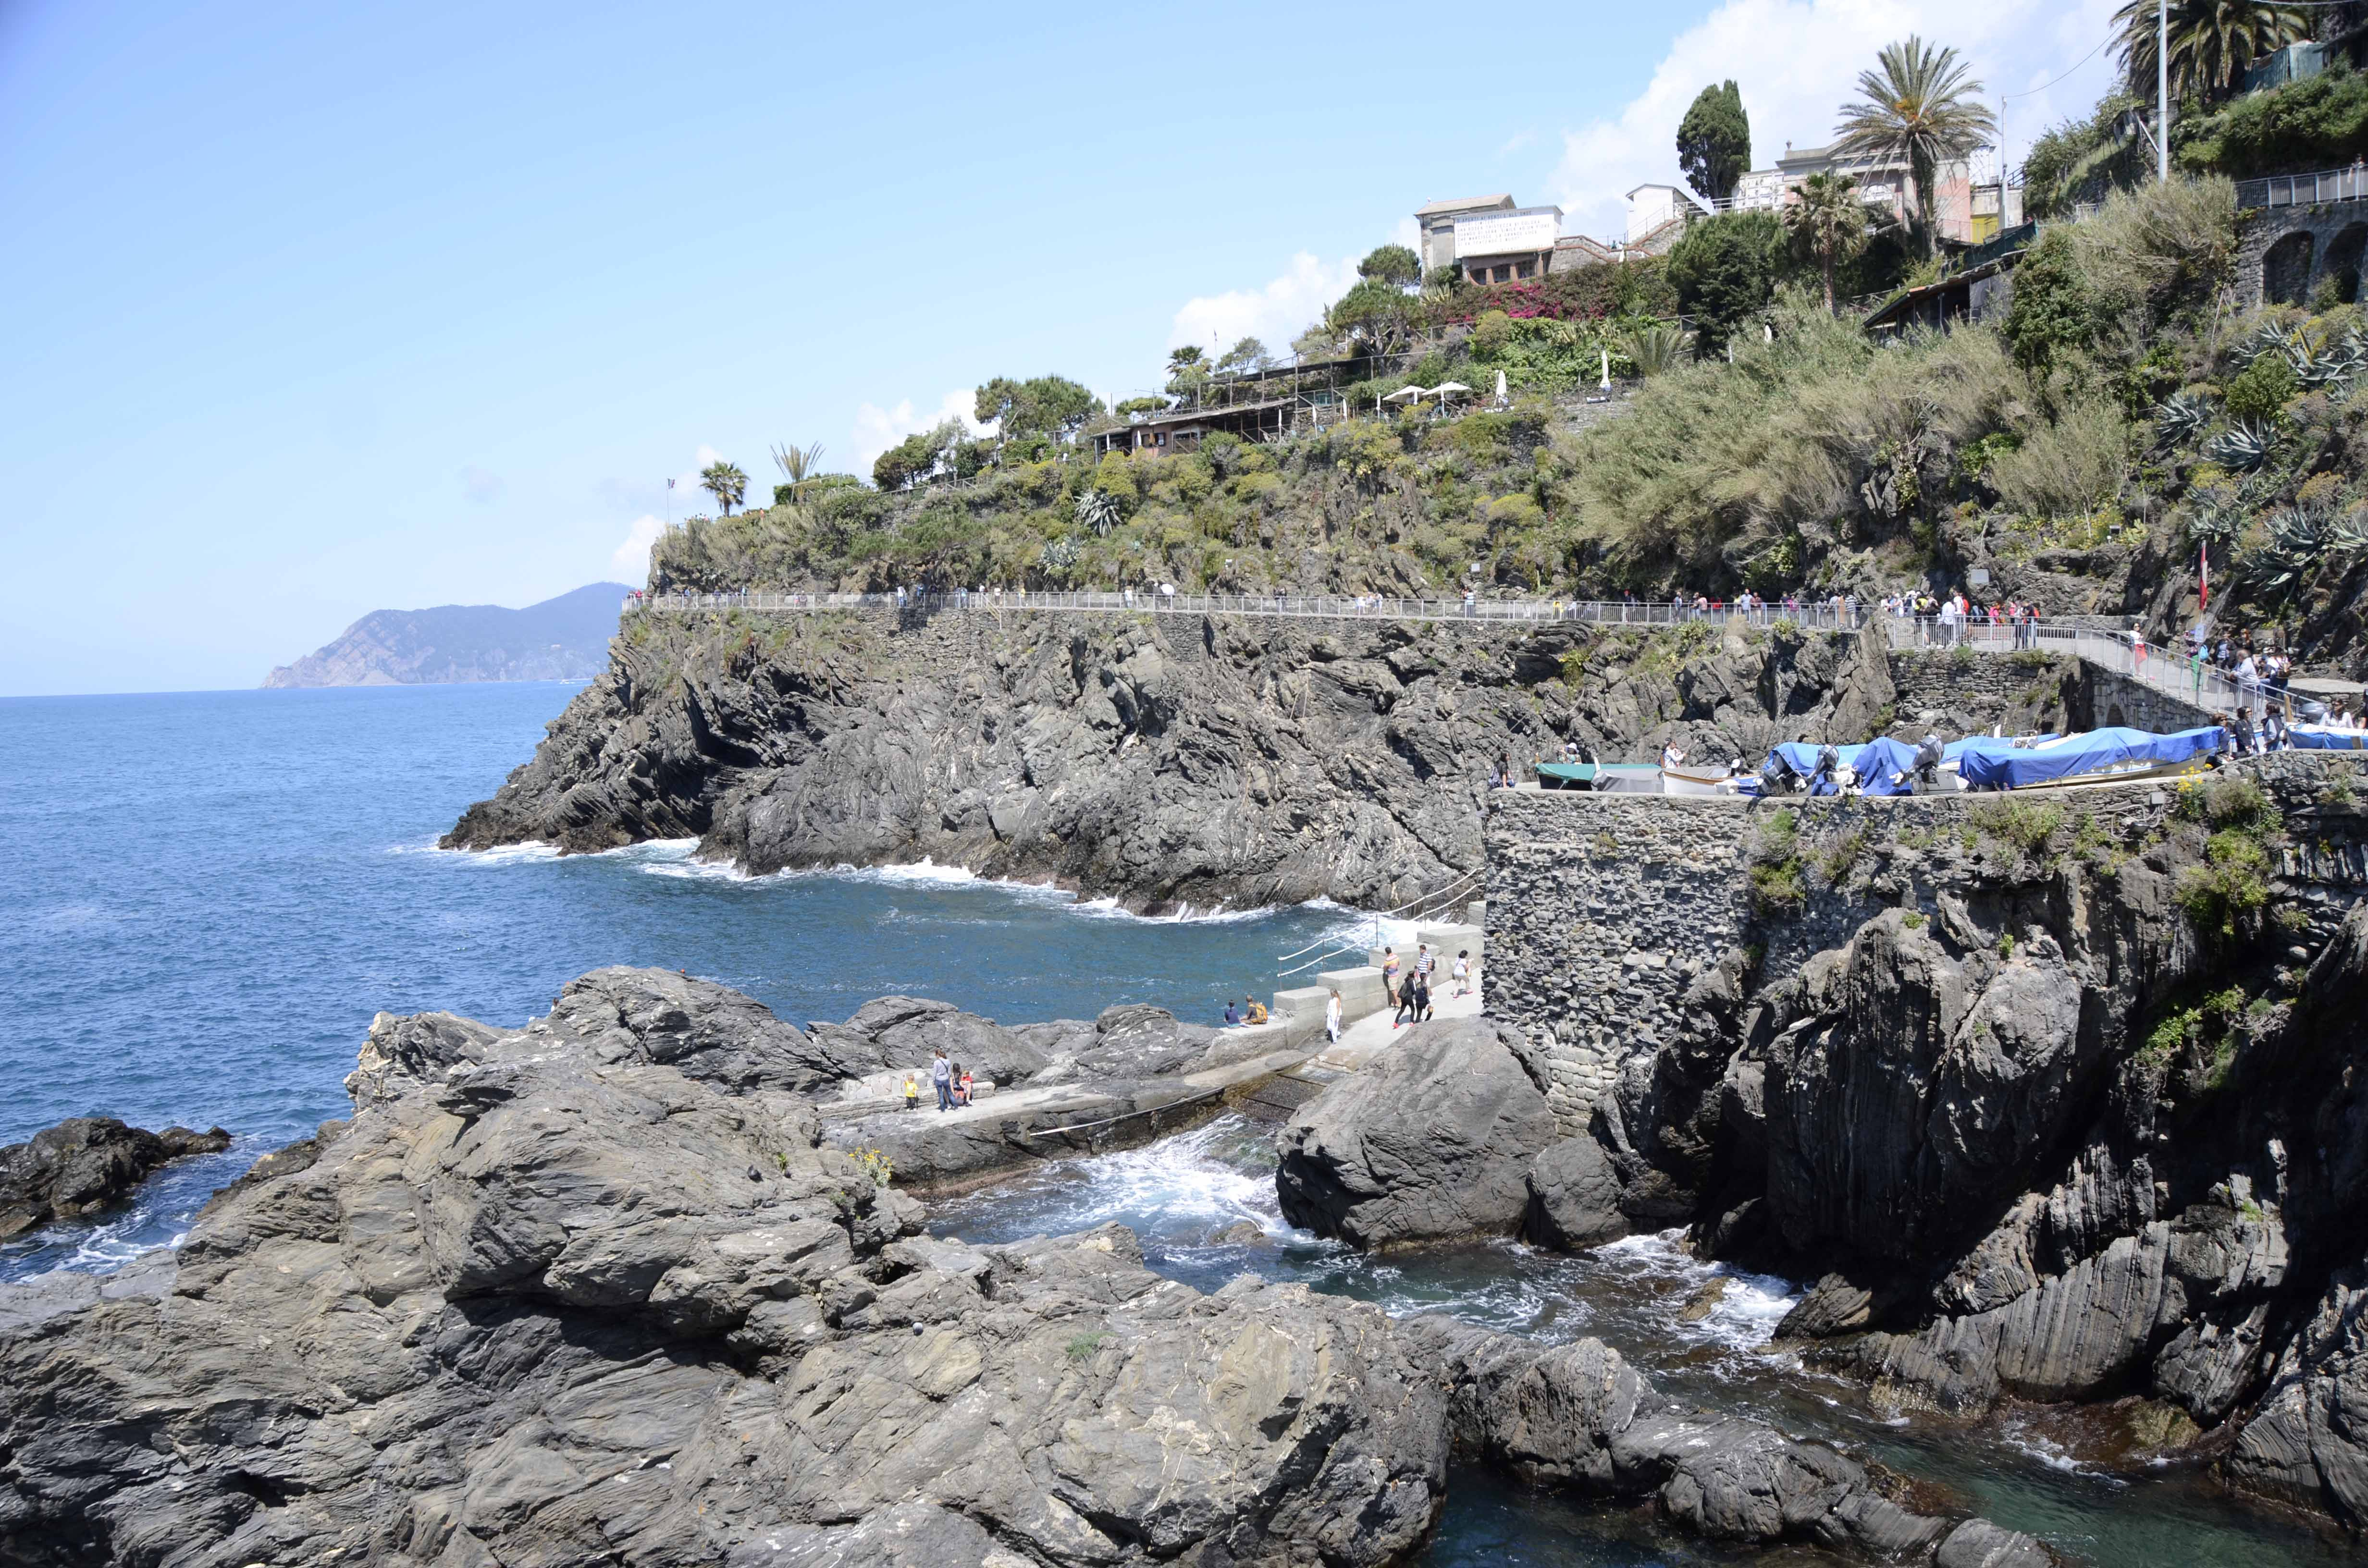 A rock slide had closed the trail from Manarola